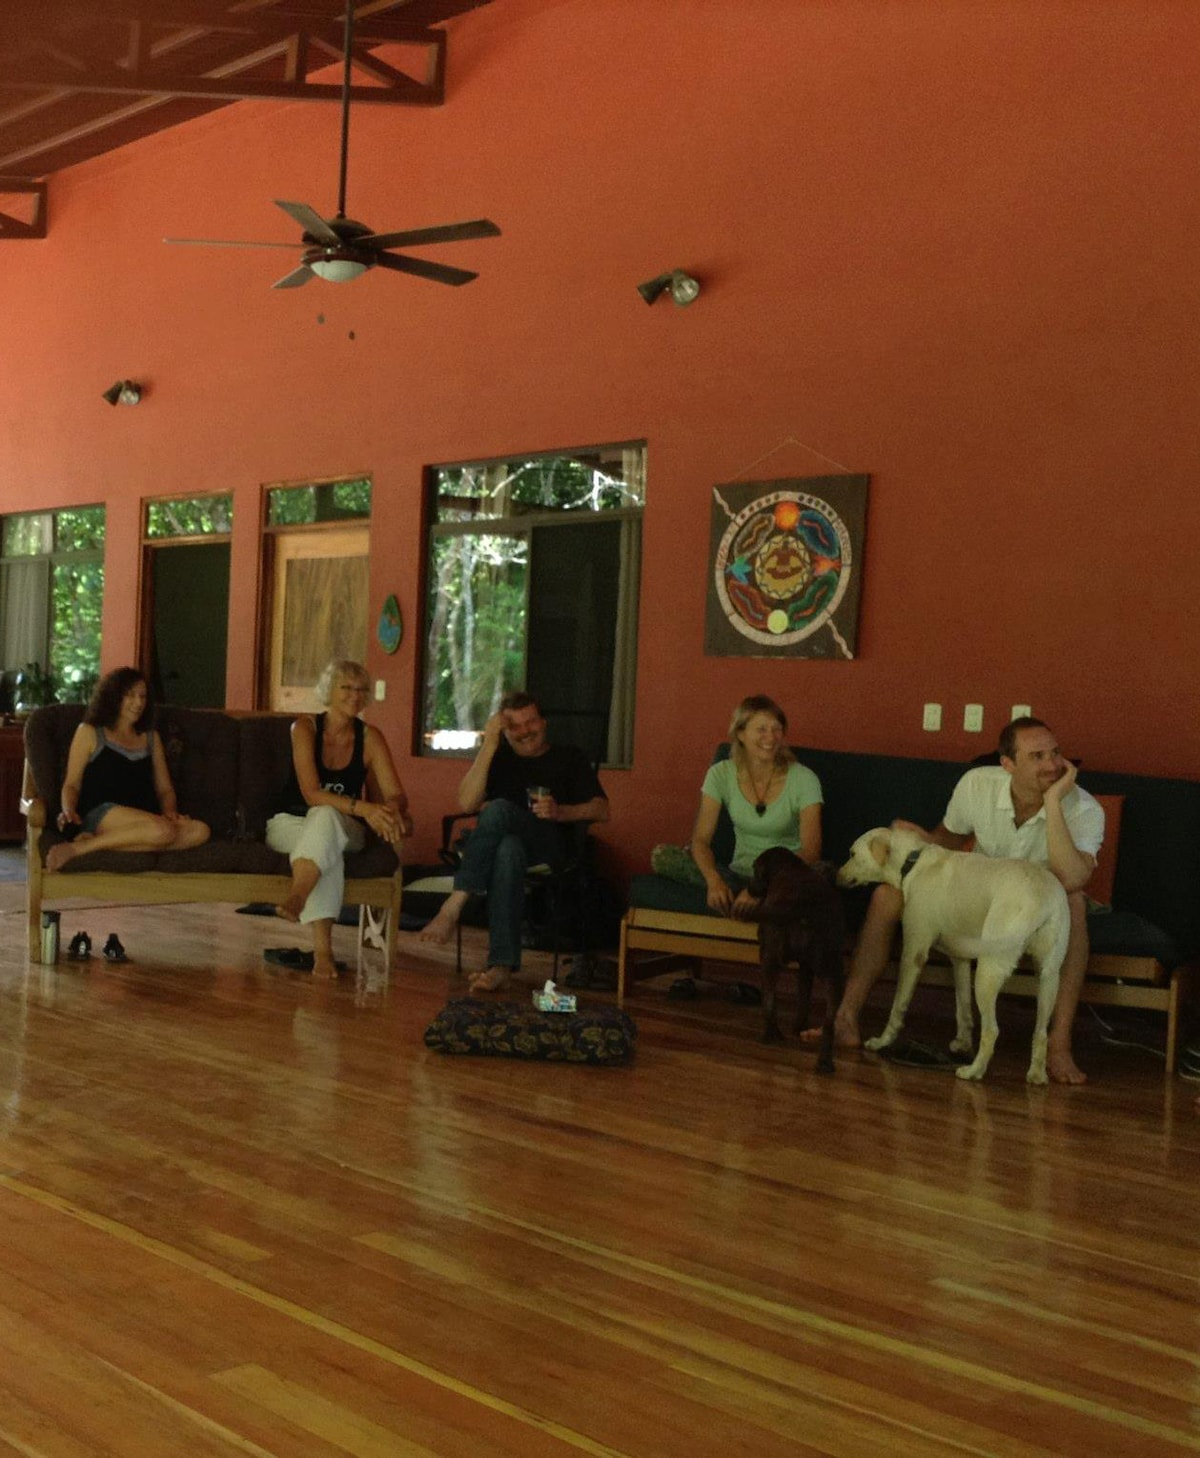 Living Forest - space for hanging out, yoga and other workshops, relaxing, fun...